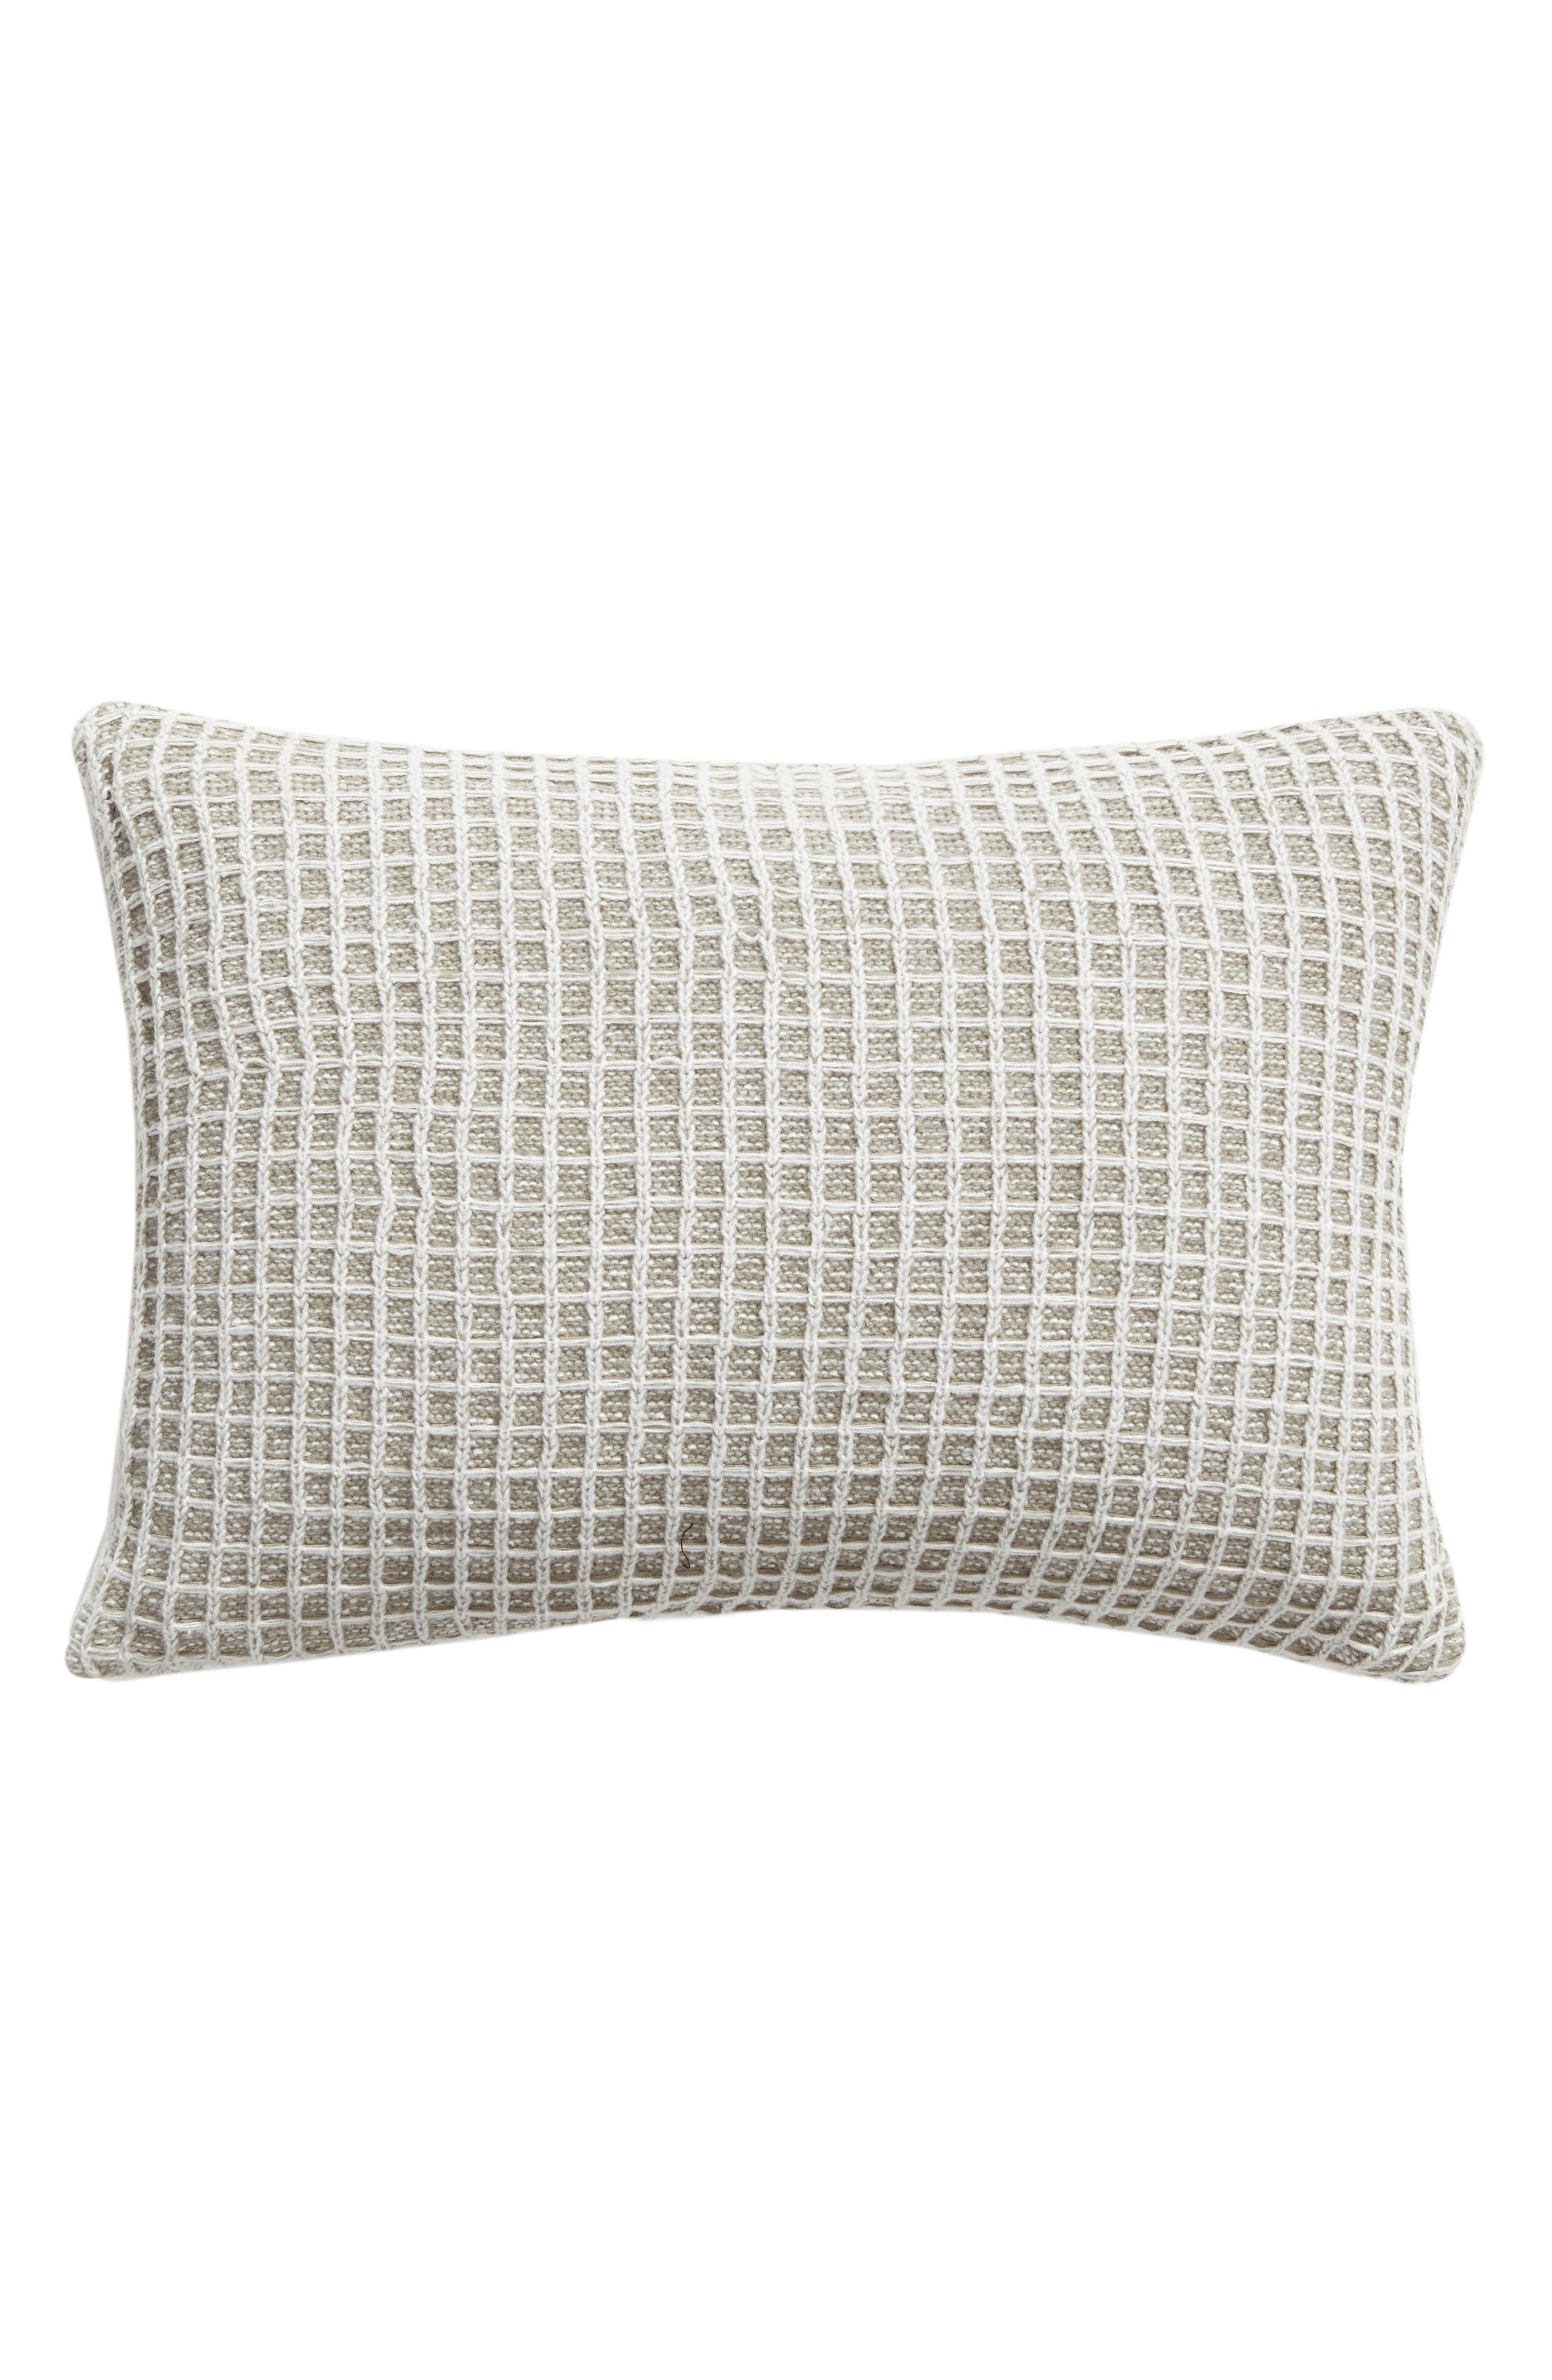 TREASURE & BOND, Soft Waffle Grid Accent Pillow, Main thumbnail 1, color, GREY WEATHER MULTI